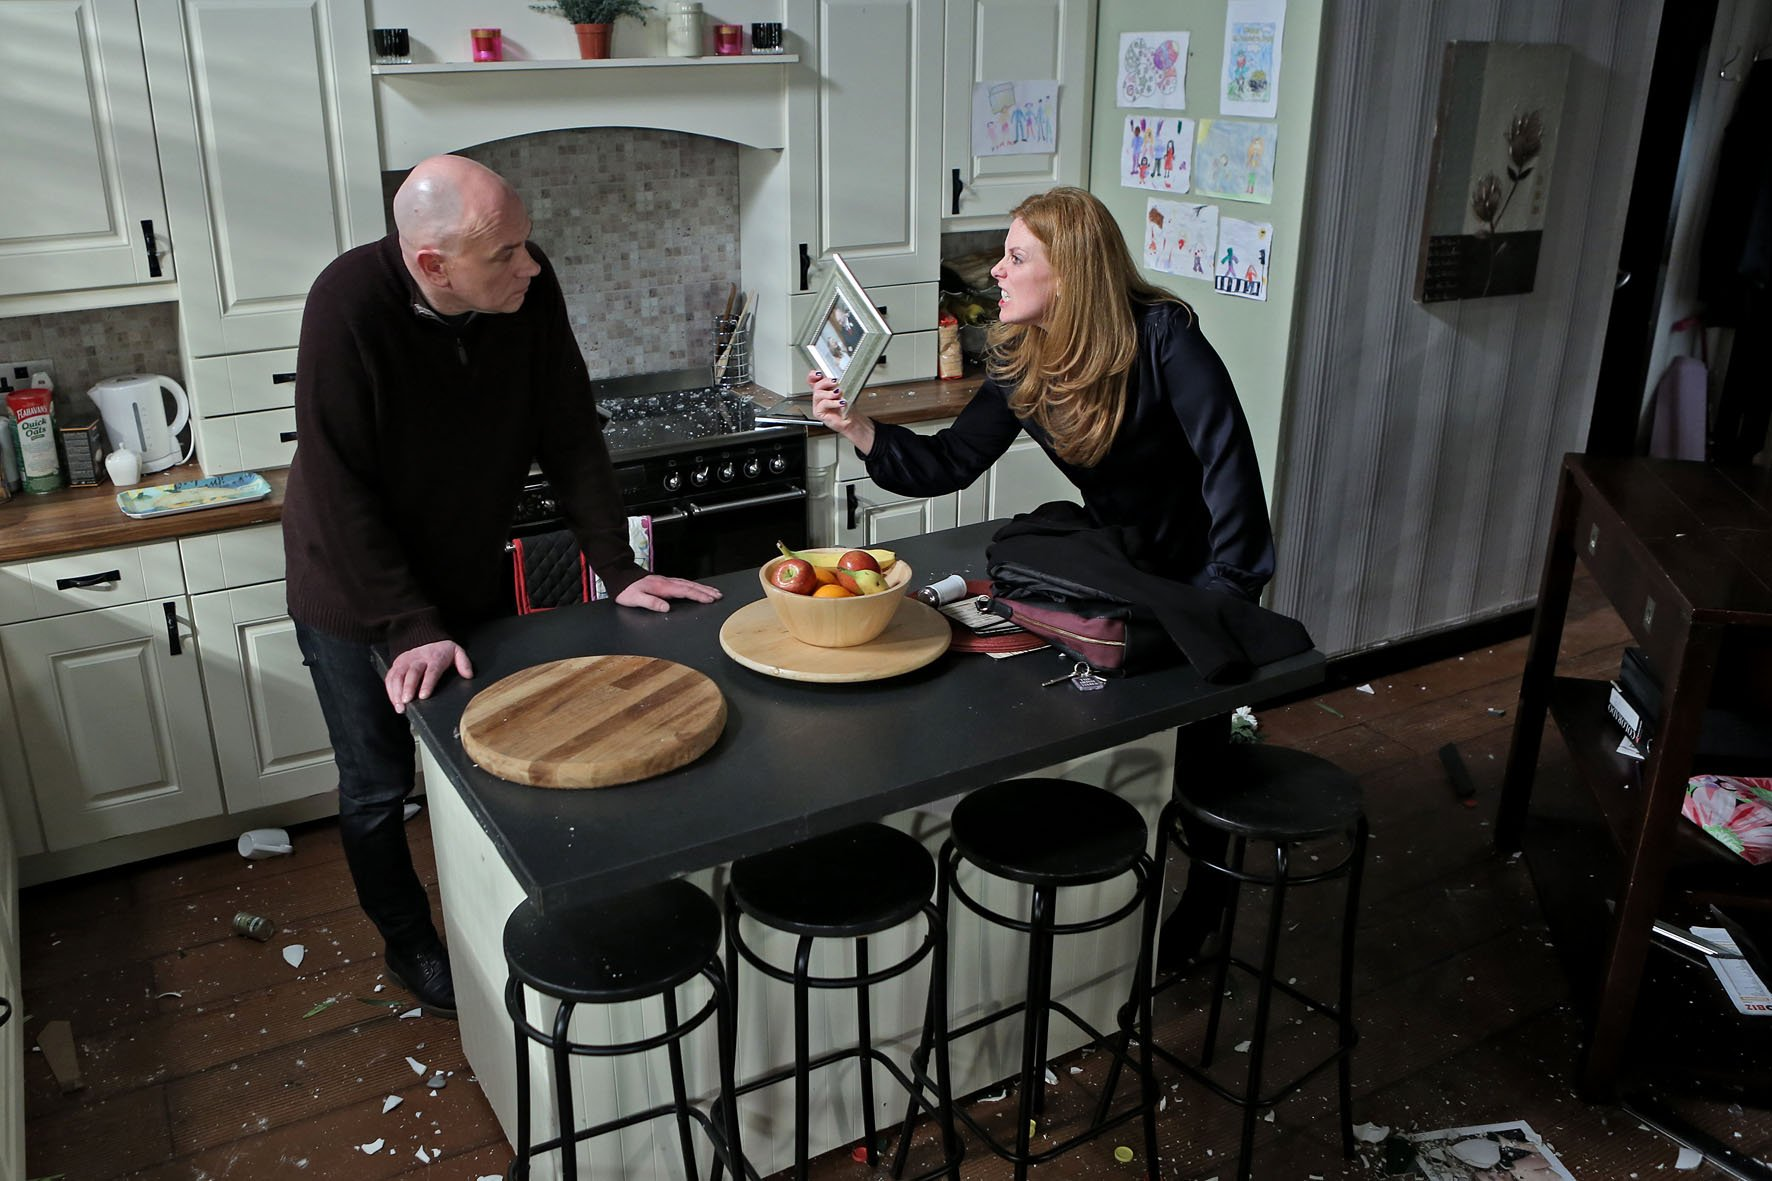 Paul and Niamh came to blows last week PIC: Fair City Twitter